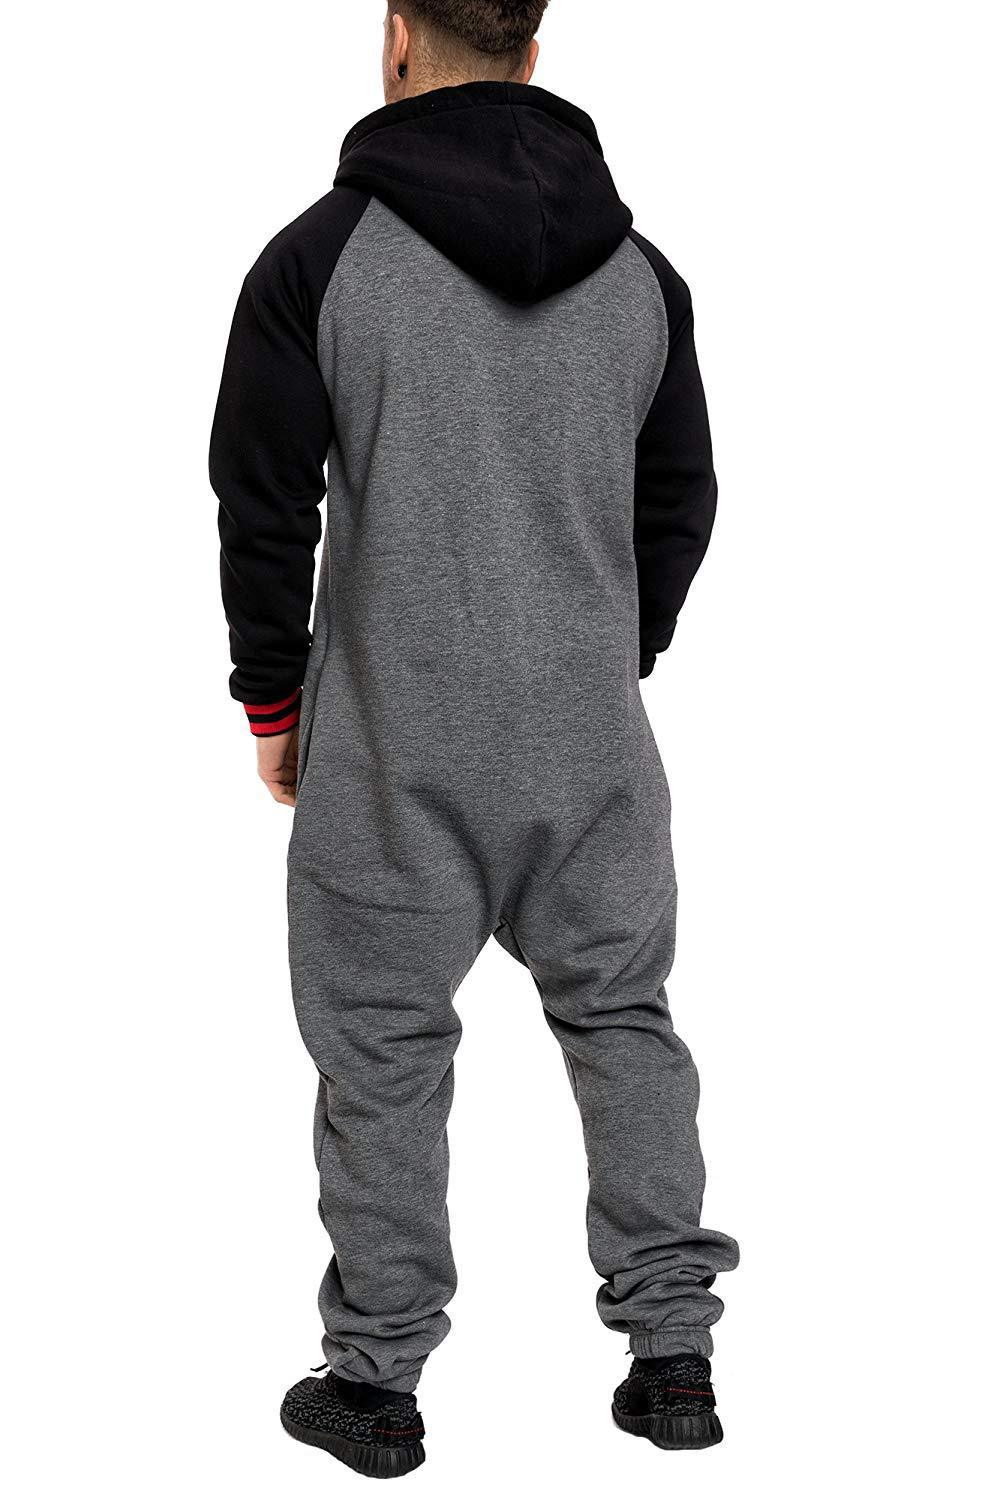 Casual Autumn Hooded Tracksuit Jumpsuit Long Pants Romper For Male Mens Fleece warm Overalls Sweatshirts Male Streetwear X9126 27